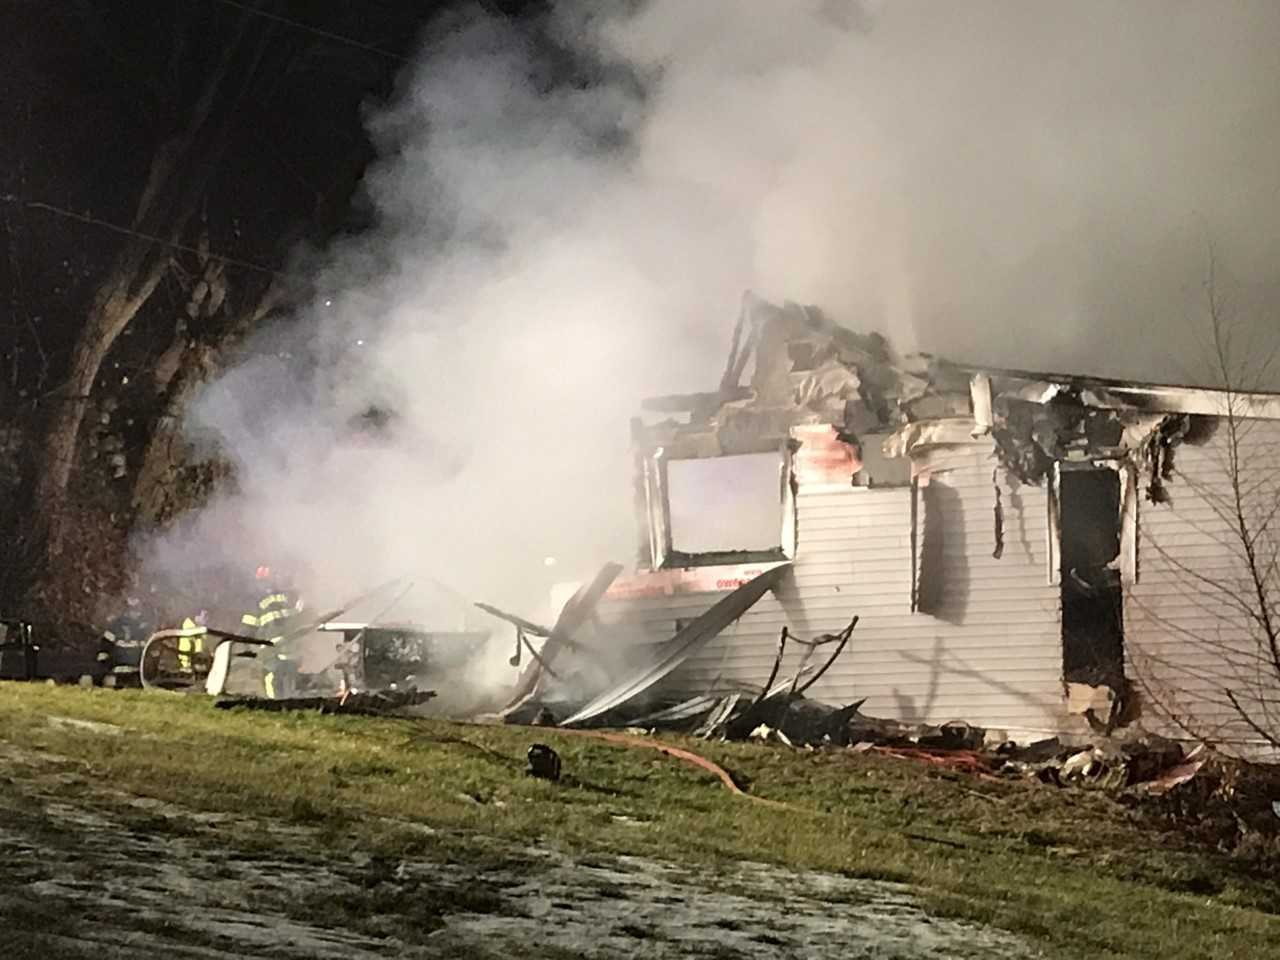 House fire in Hannibal